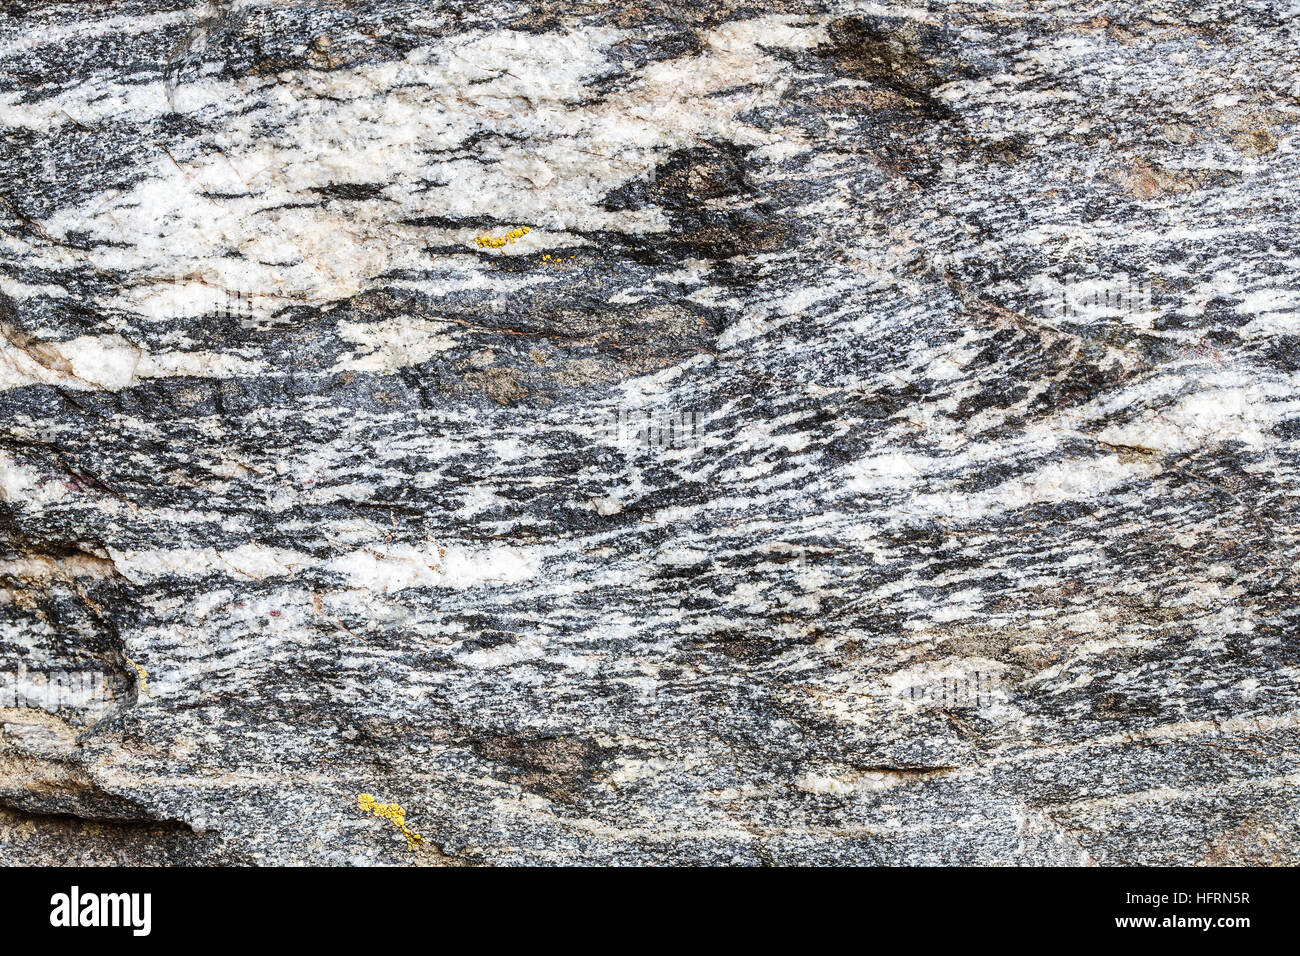 Granite stone texture, wall close-up - Stock Image